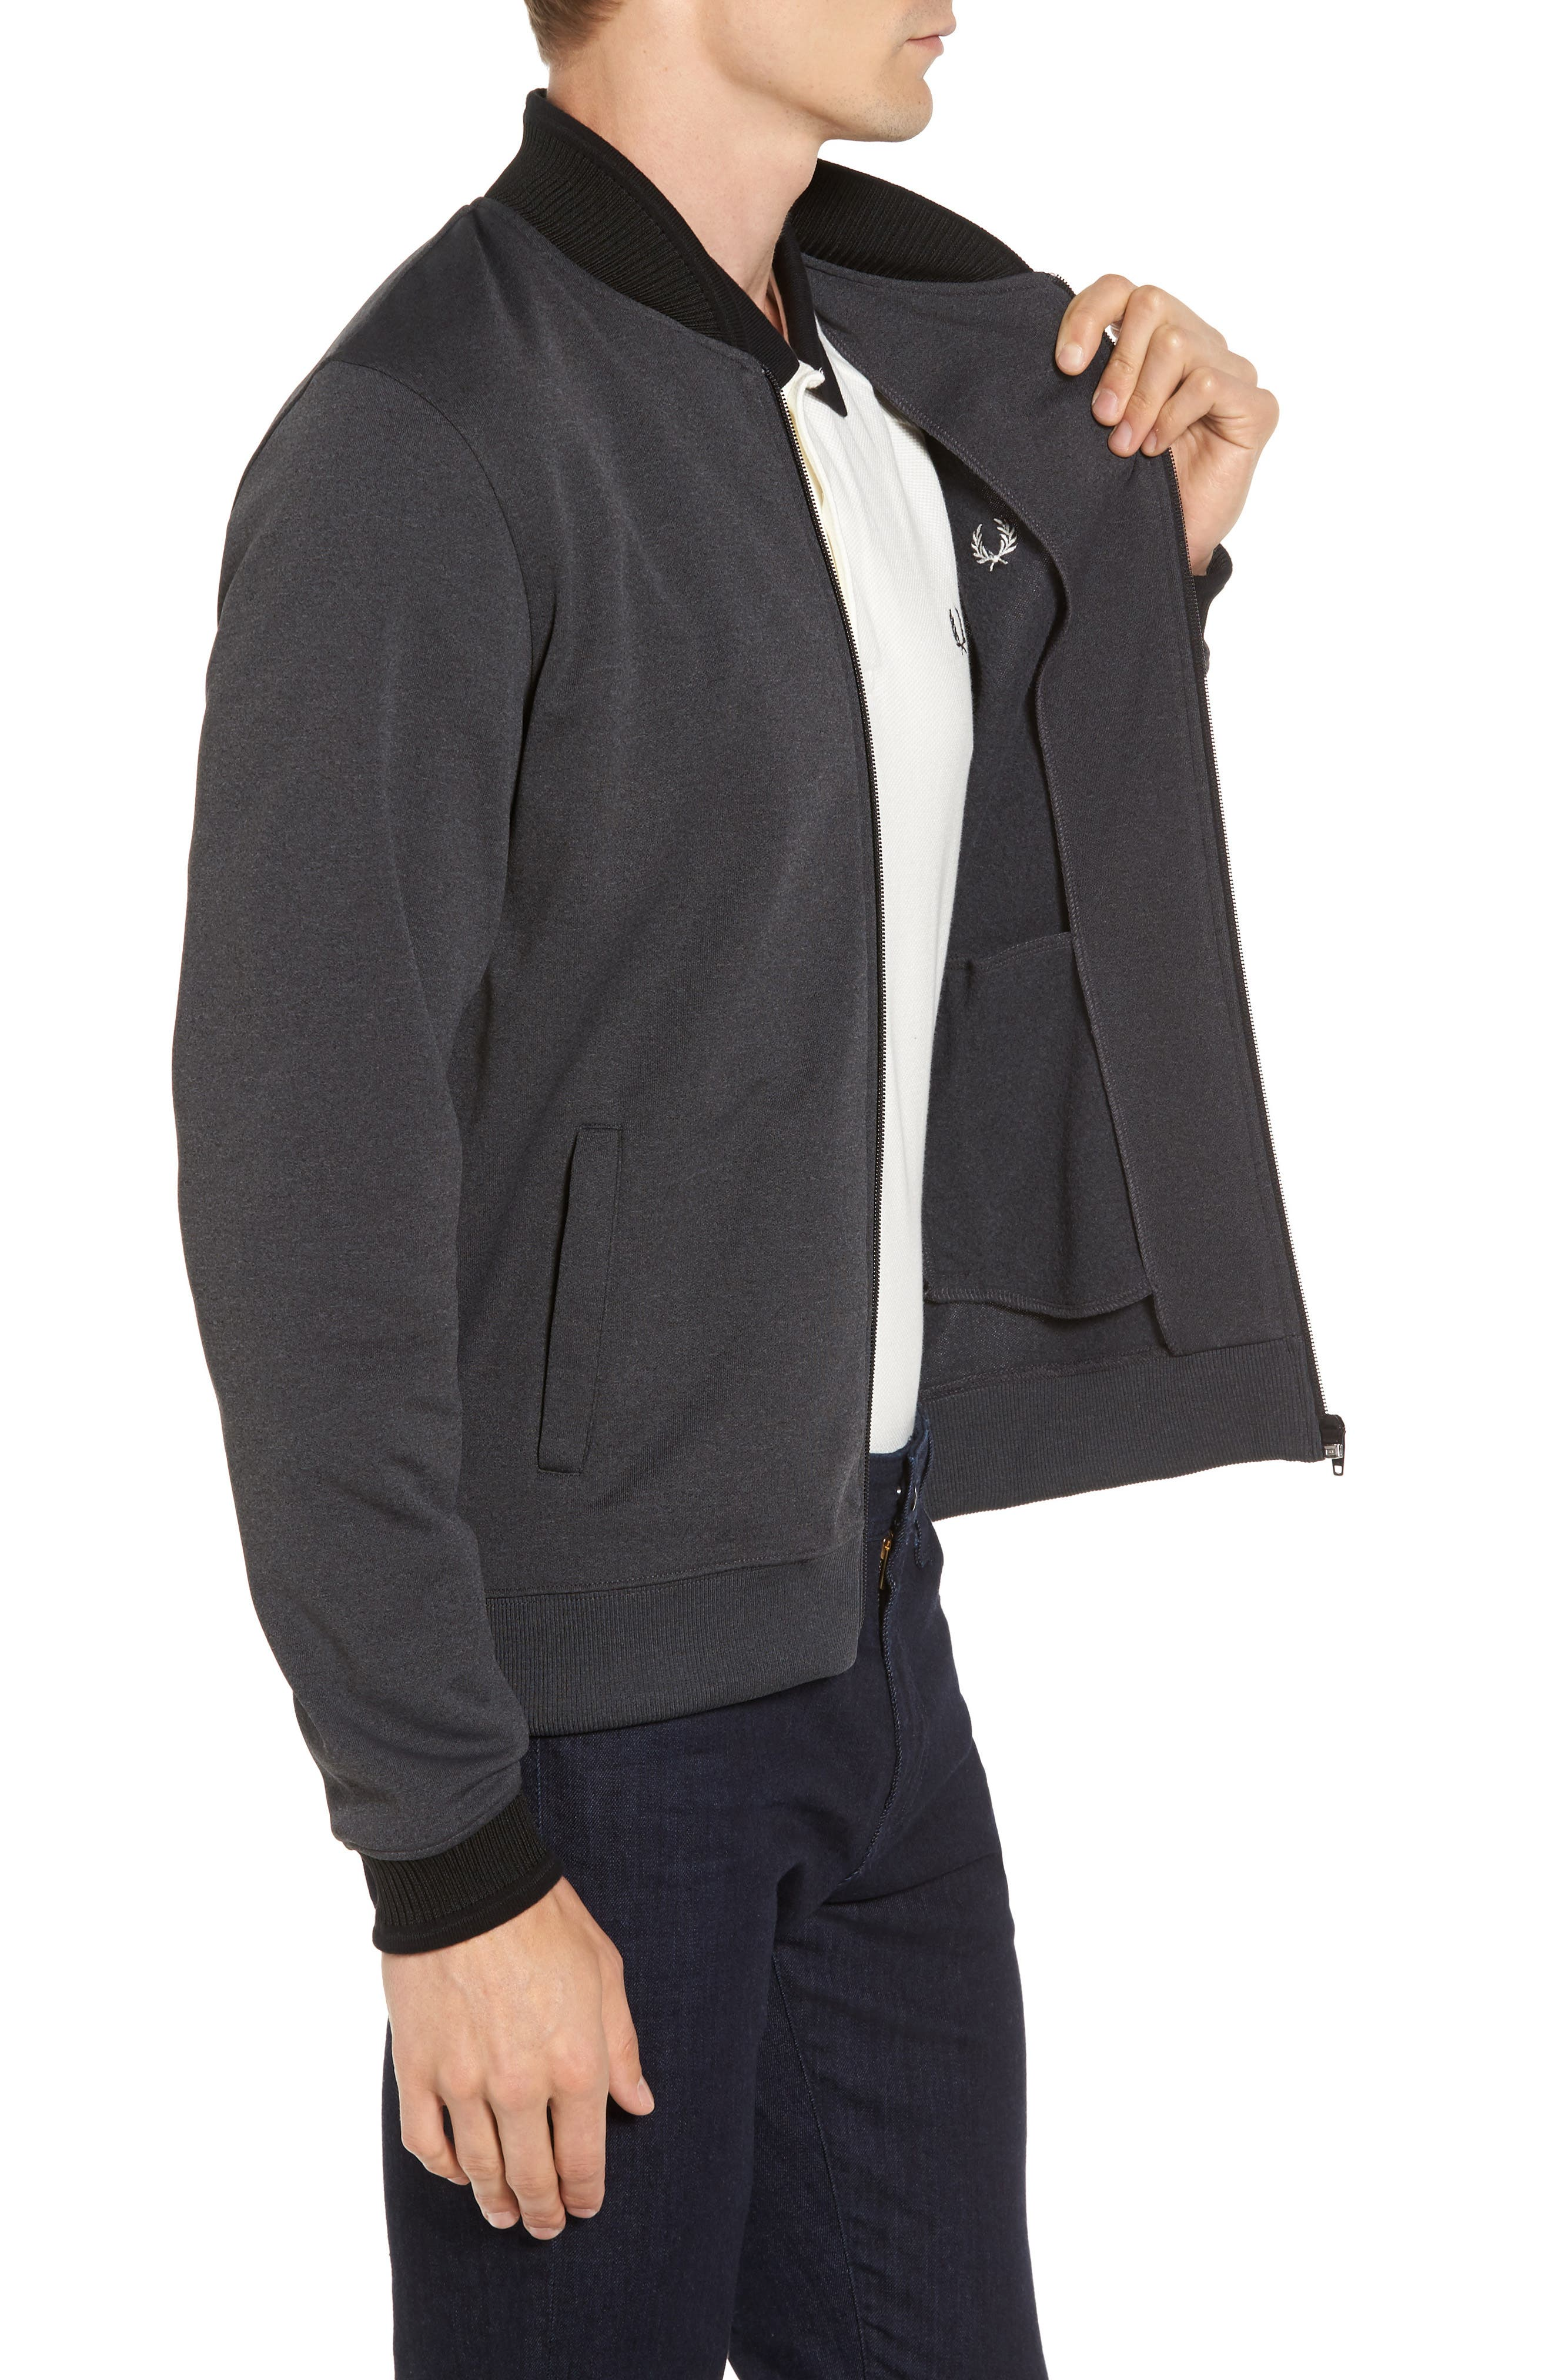 Bomber Jacket,                             Alternate thumbnail 3, color,                             Charcoal Solid Marl